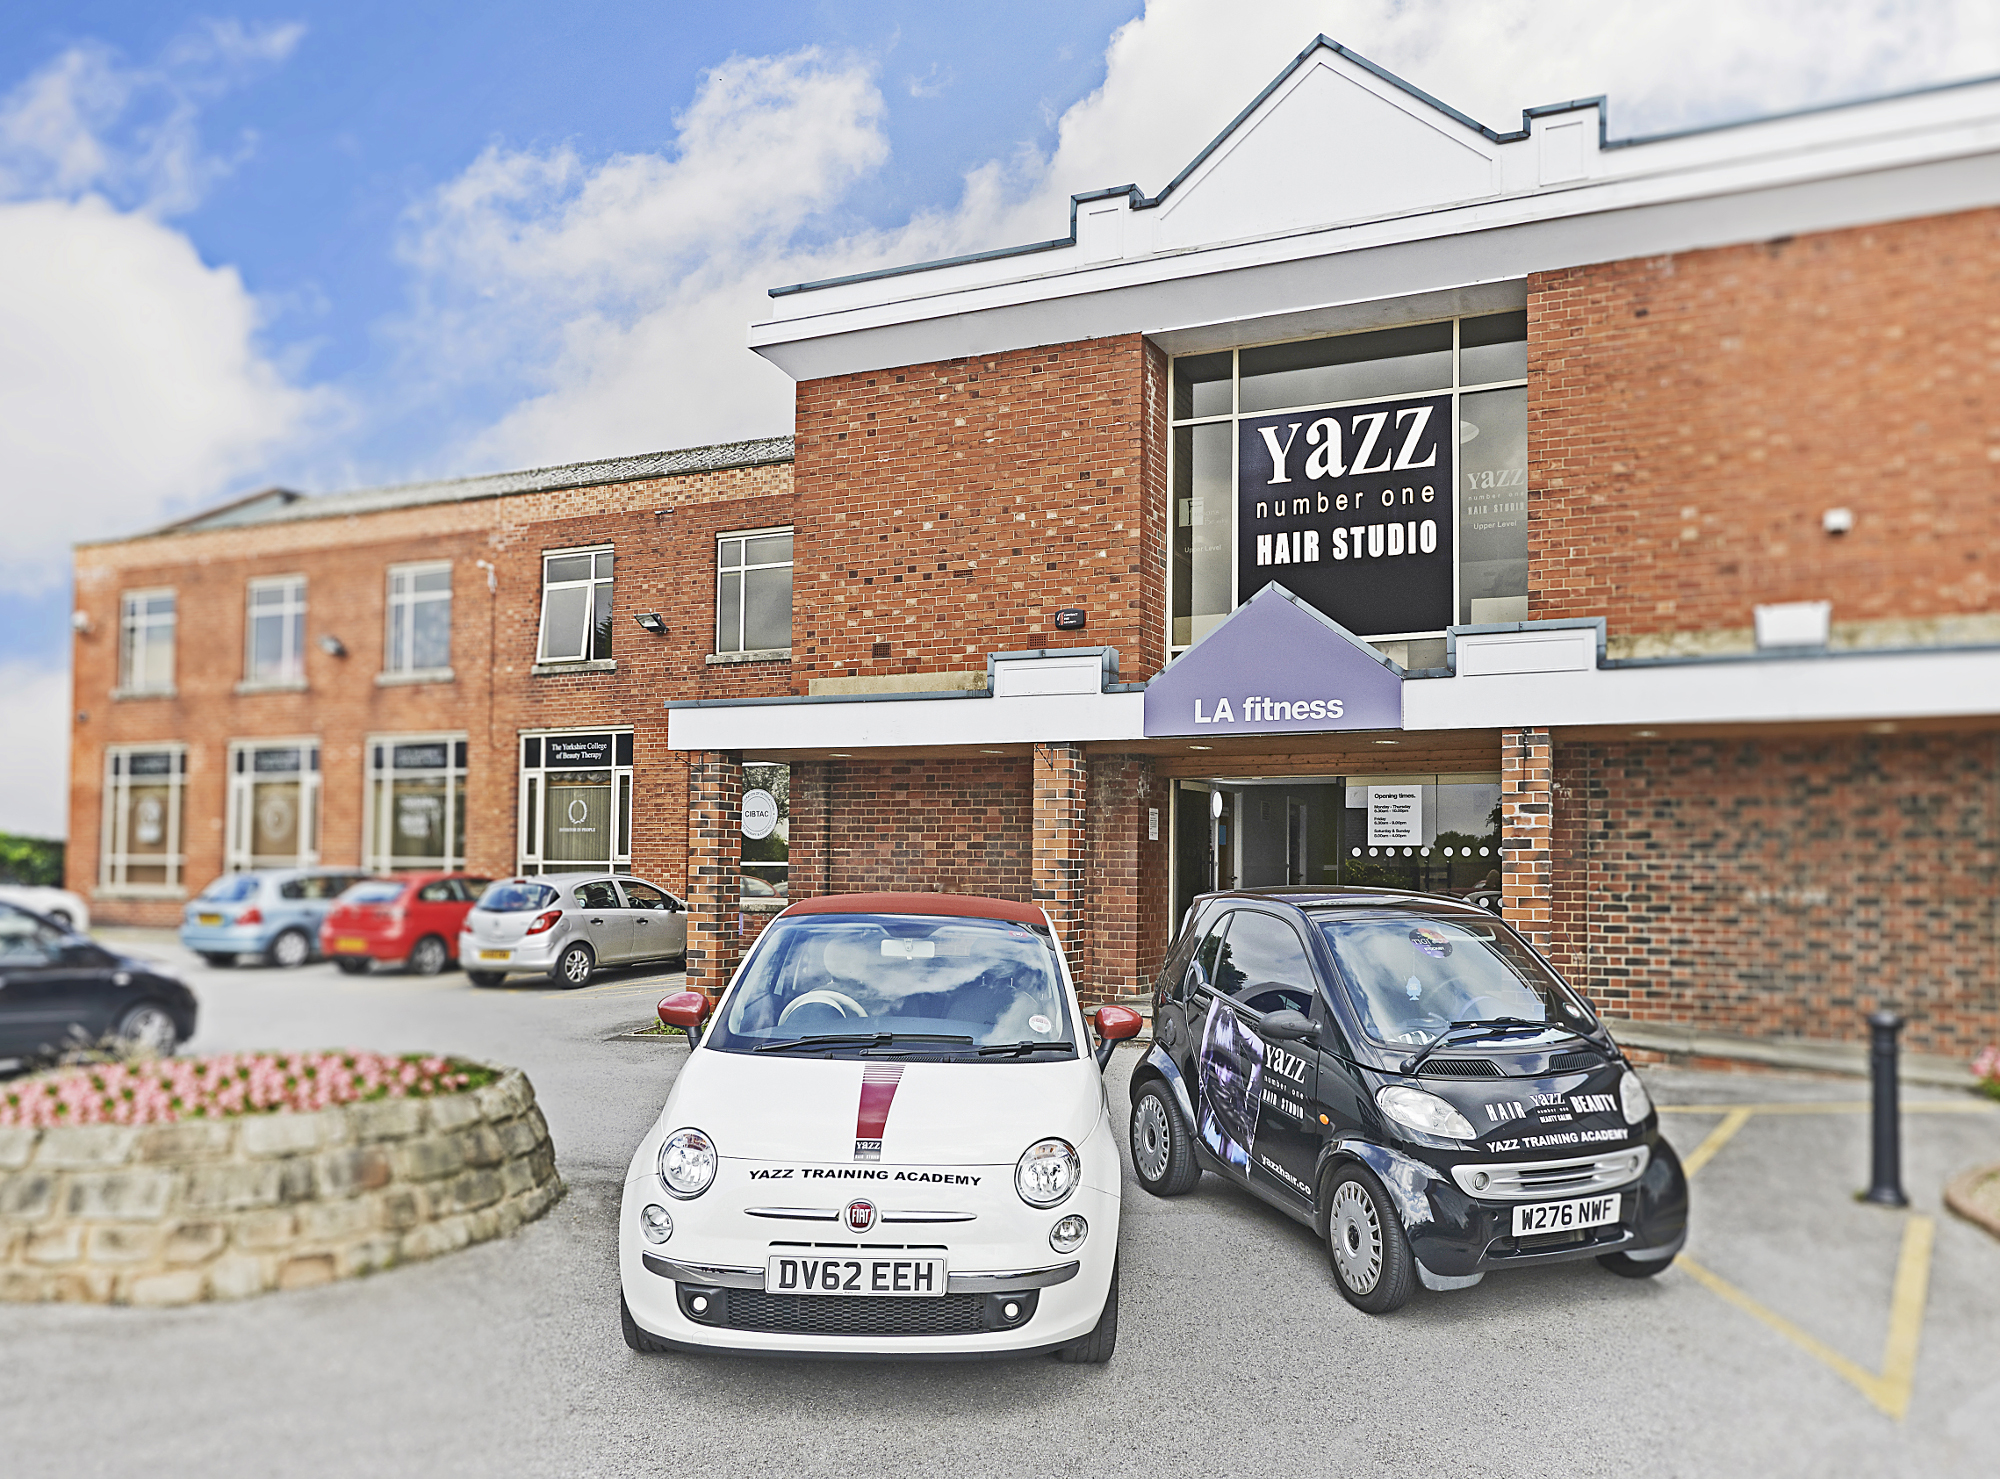 yazz hair yeadon salon - yazz number one hair studio